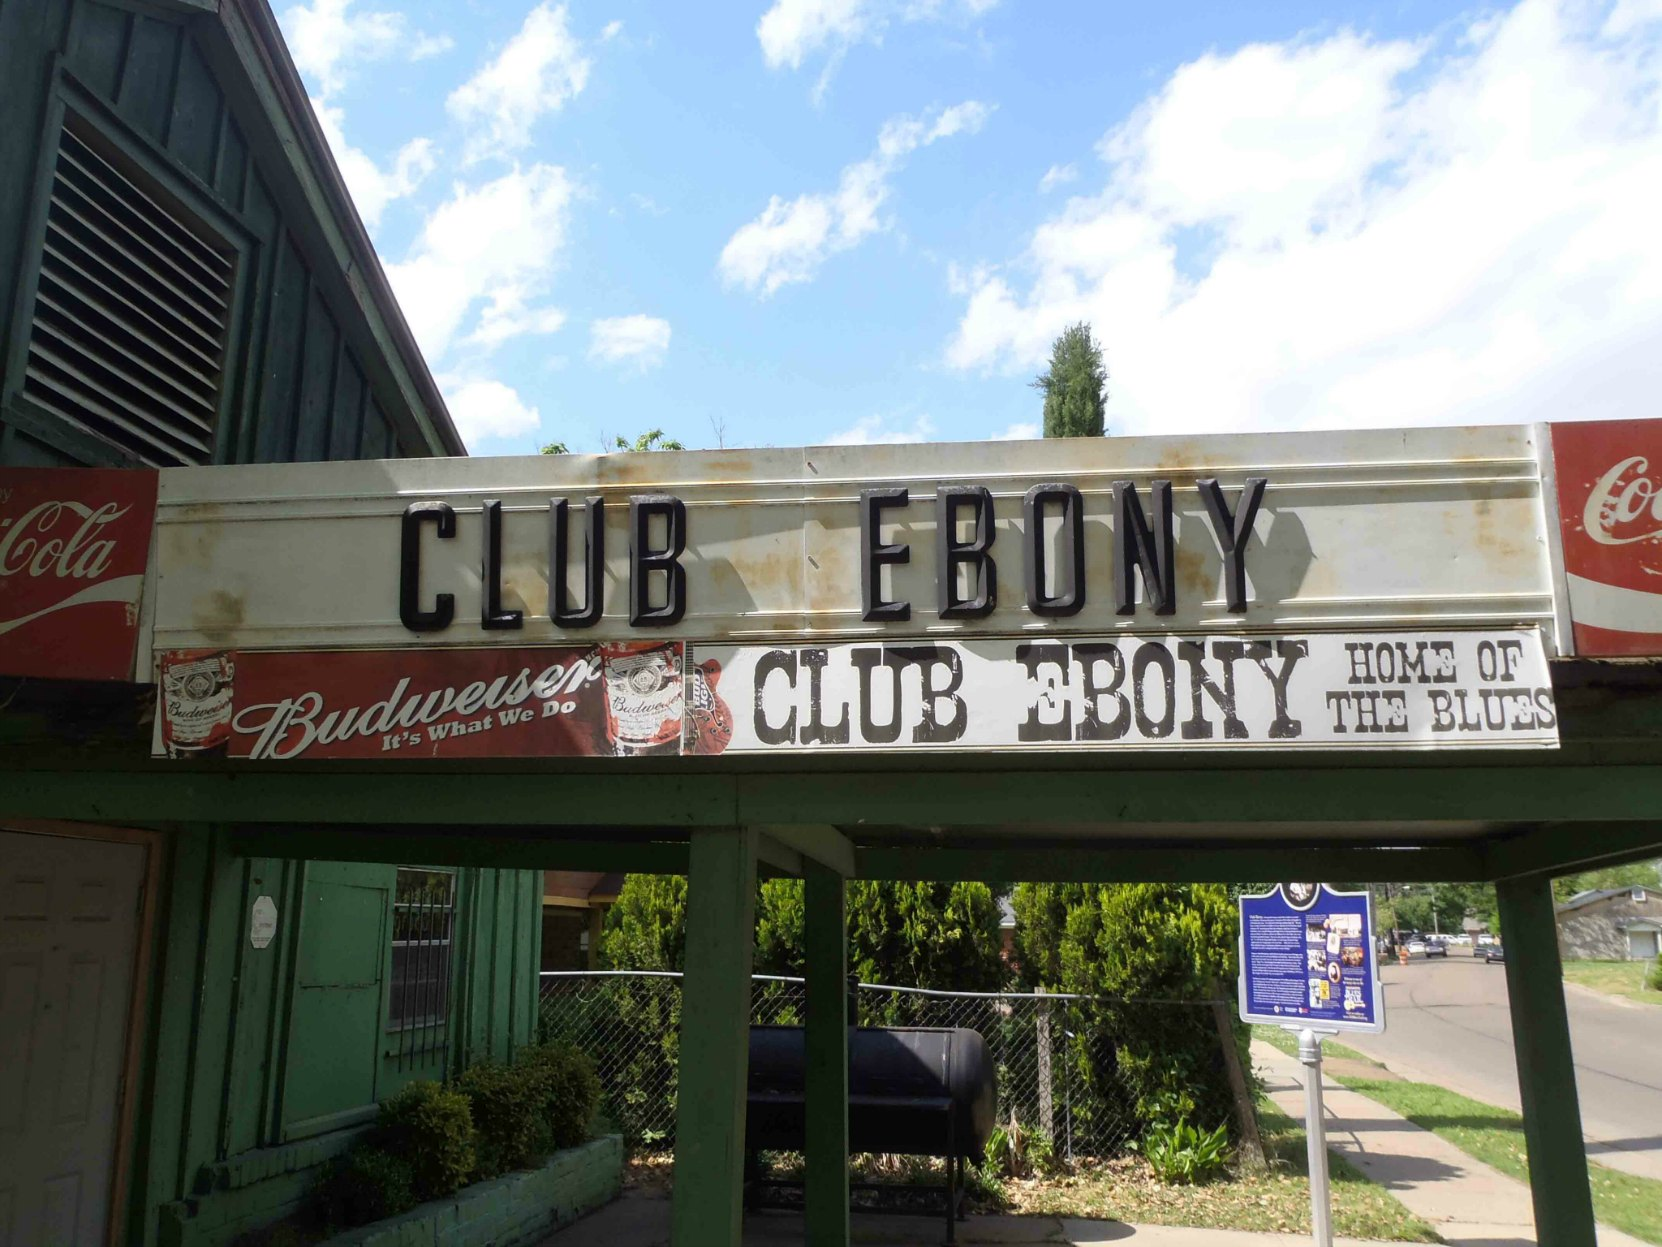 Club Ebony marquee, 404 Hannah Street, Indianola, Mississippi